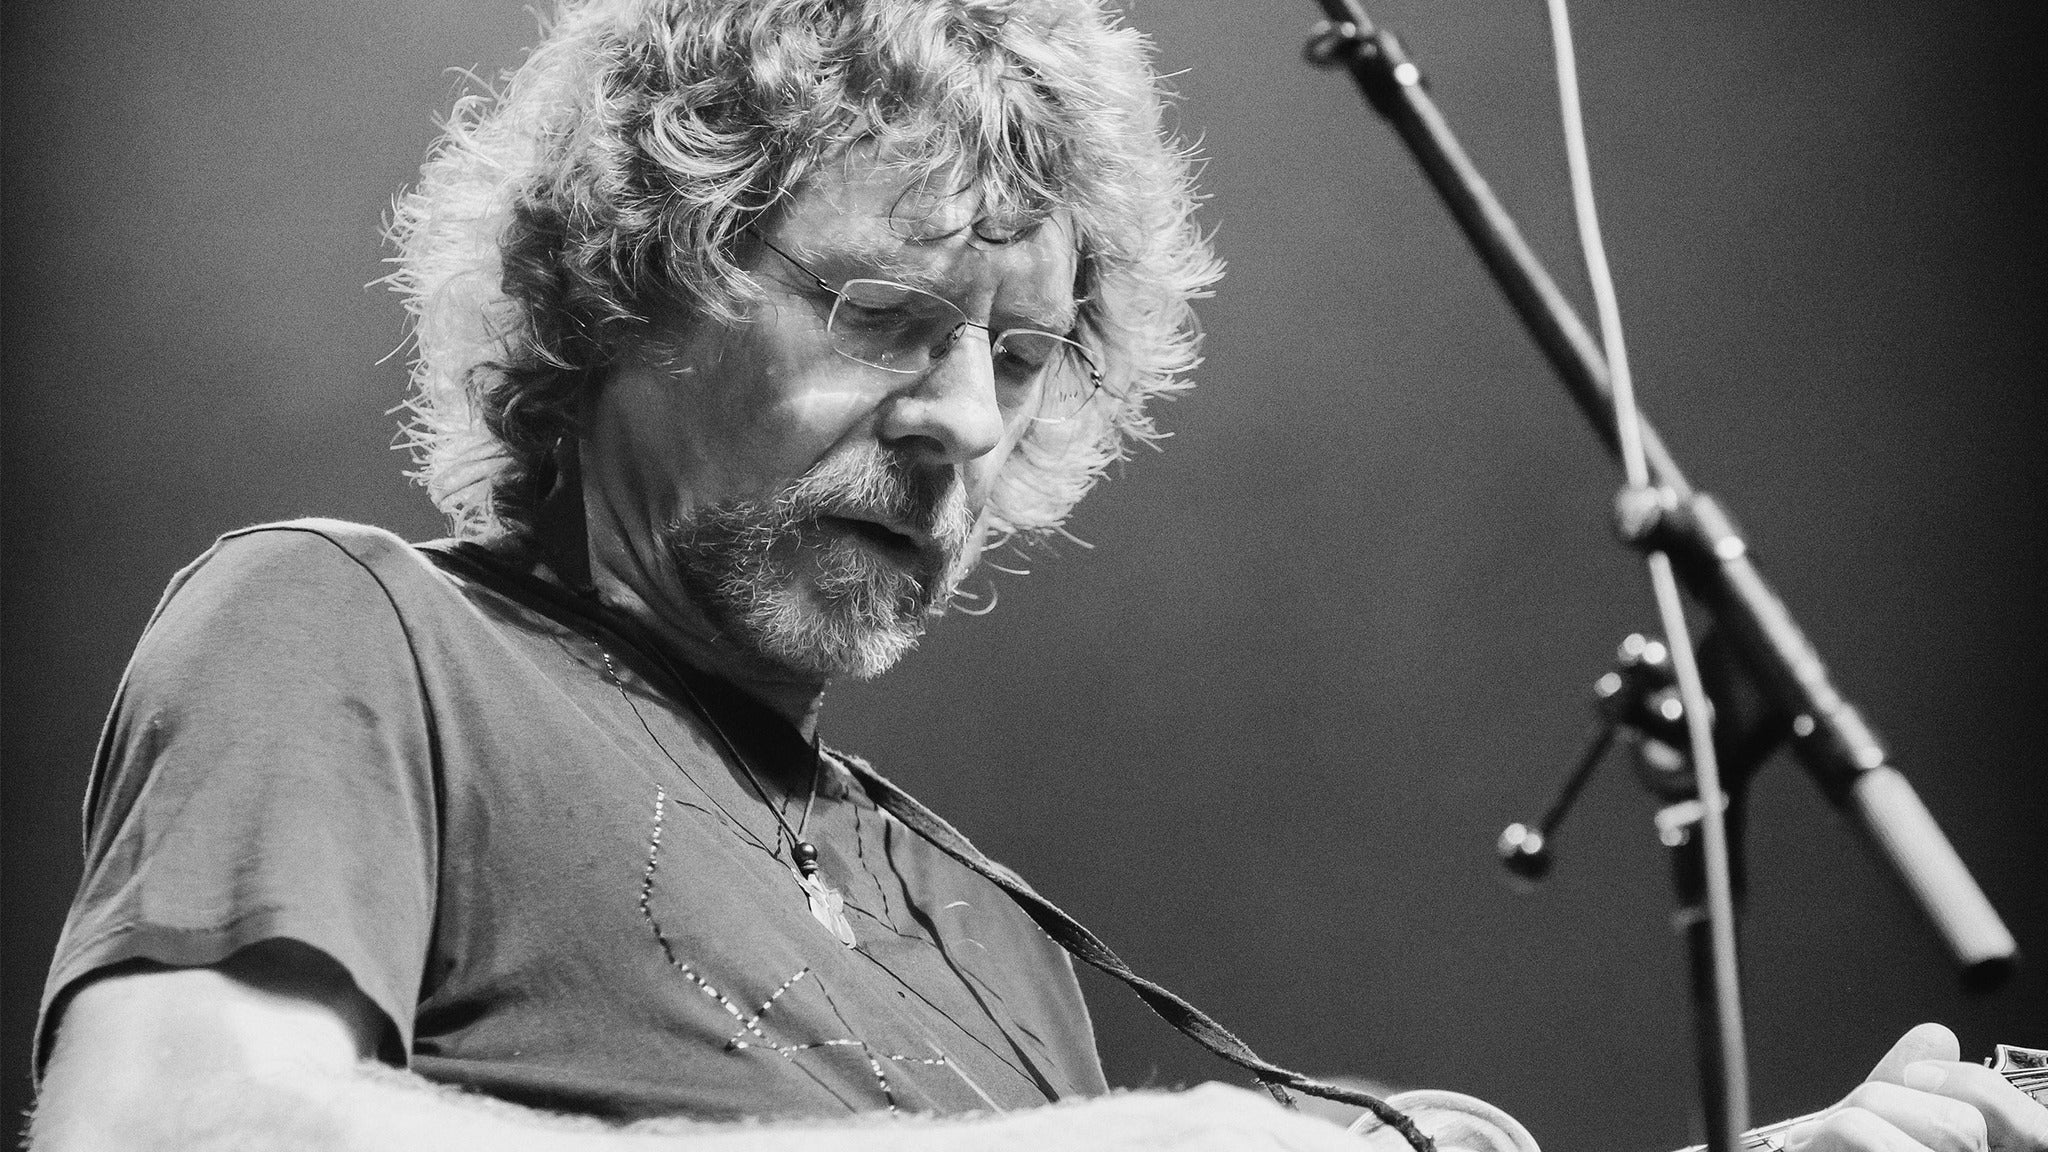 Sam Bush at Boulder Theatre - Boulder, CO 80302